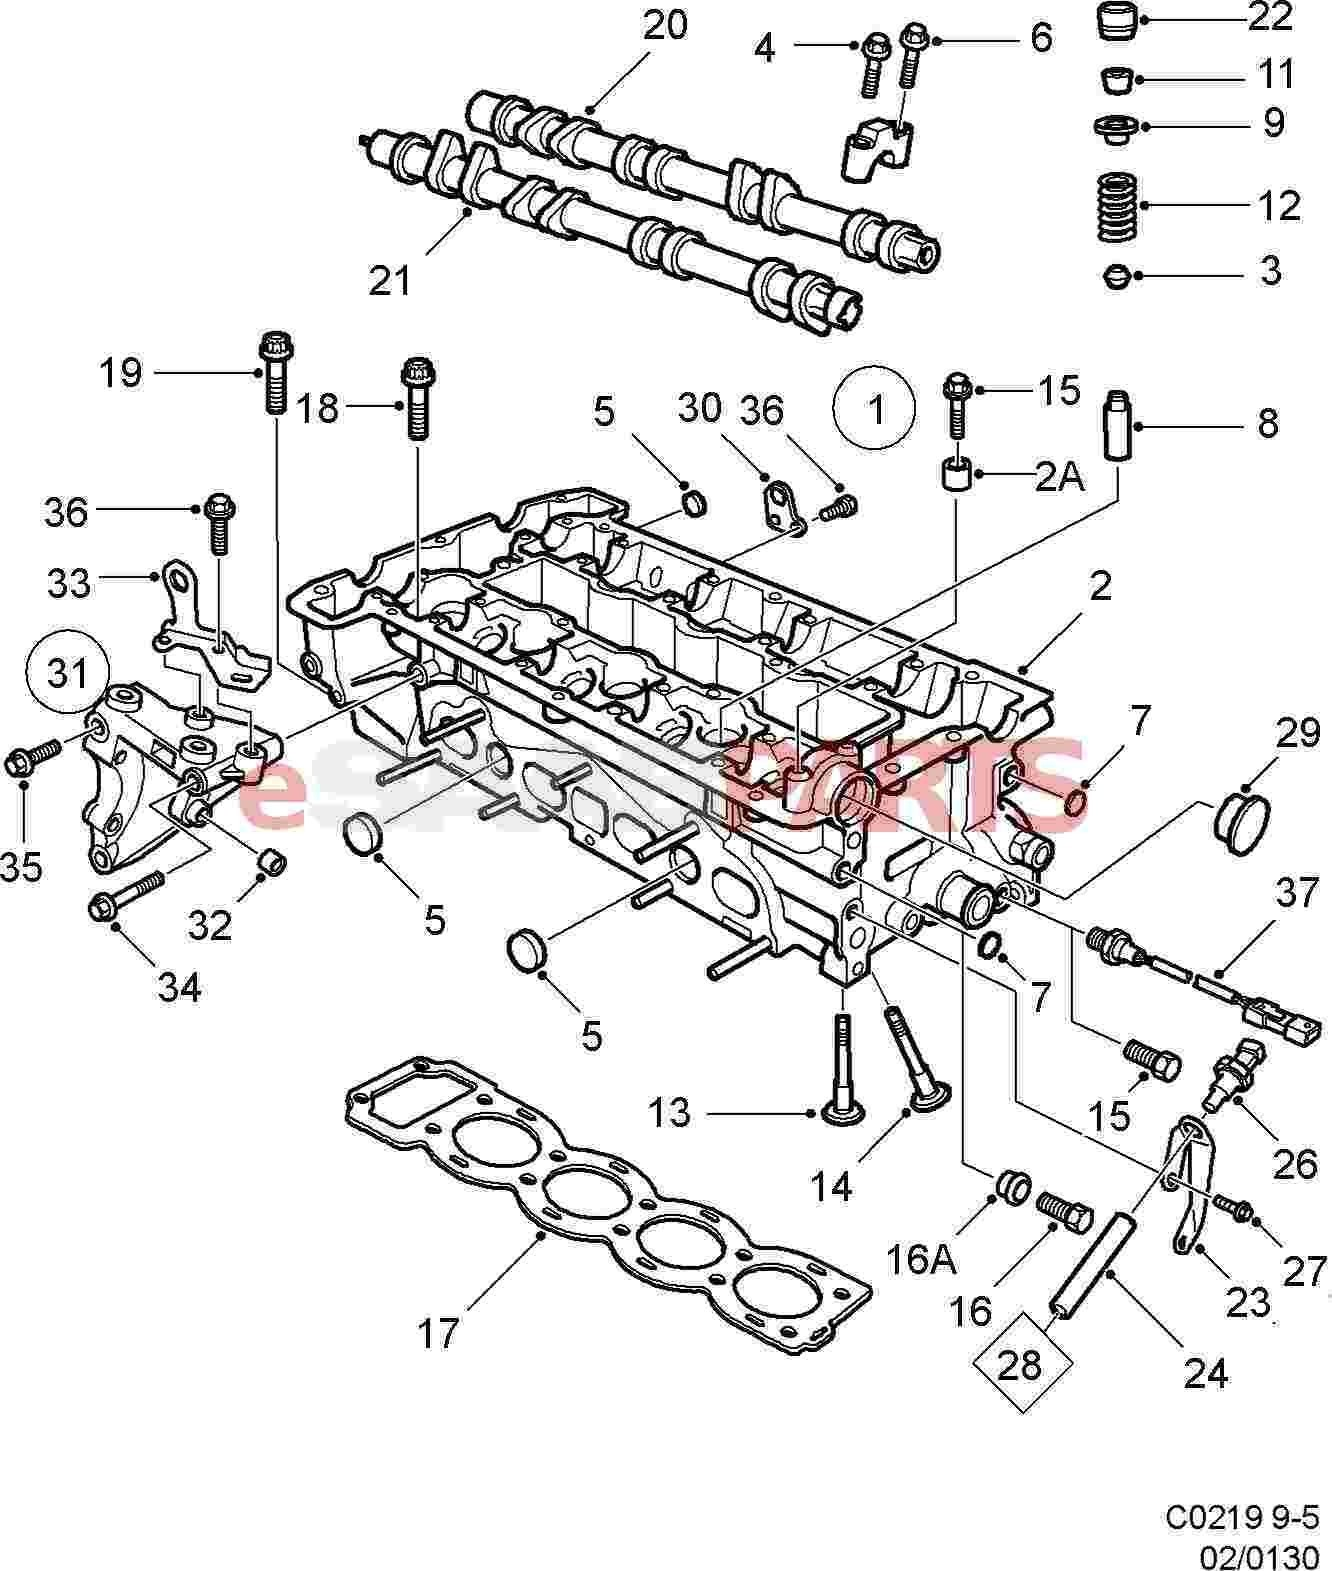 2007 saab 9 5 engine diagram  u2022 wiring diagram for free